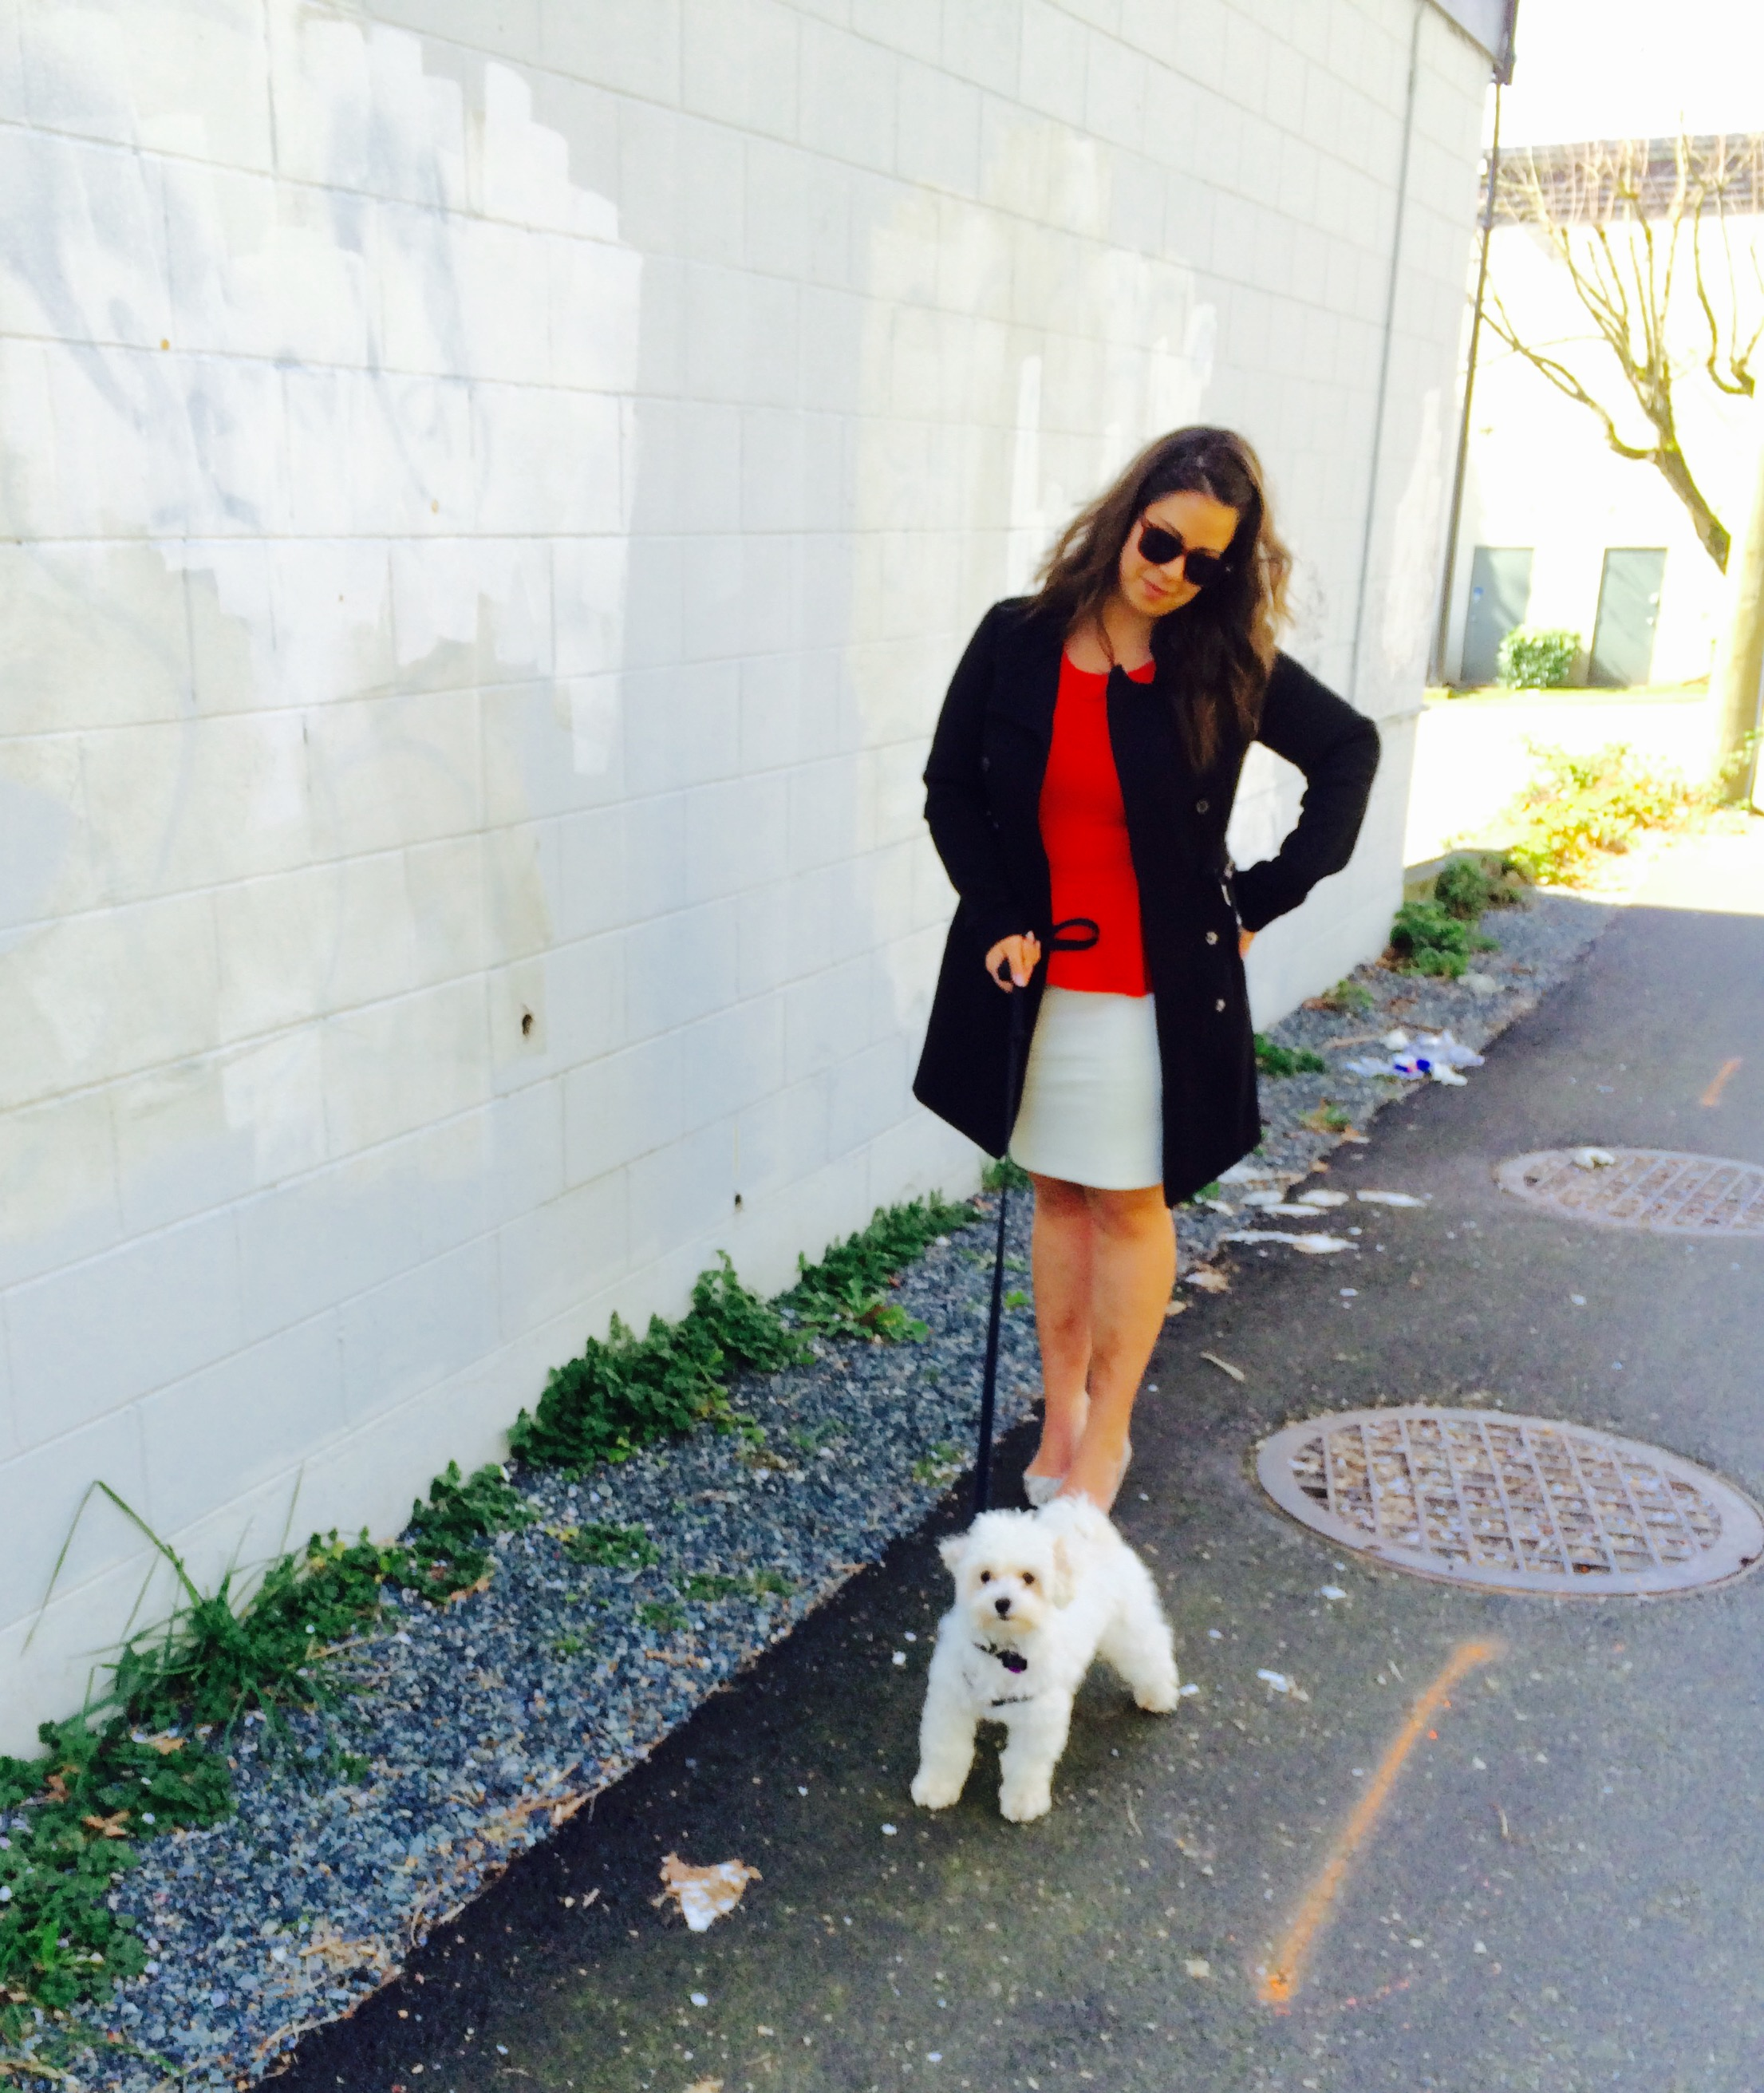 Jacket: Vera Moda. Skirt and Top: Calvin Klein. Shoes: Aldo. Dog: Milo!